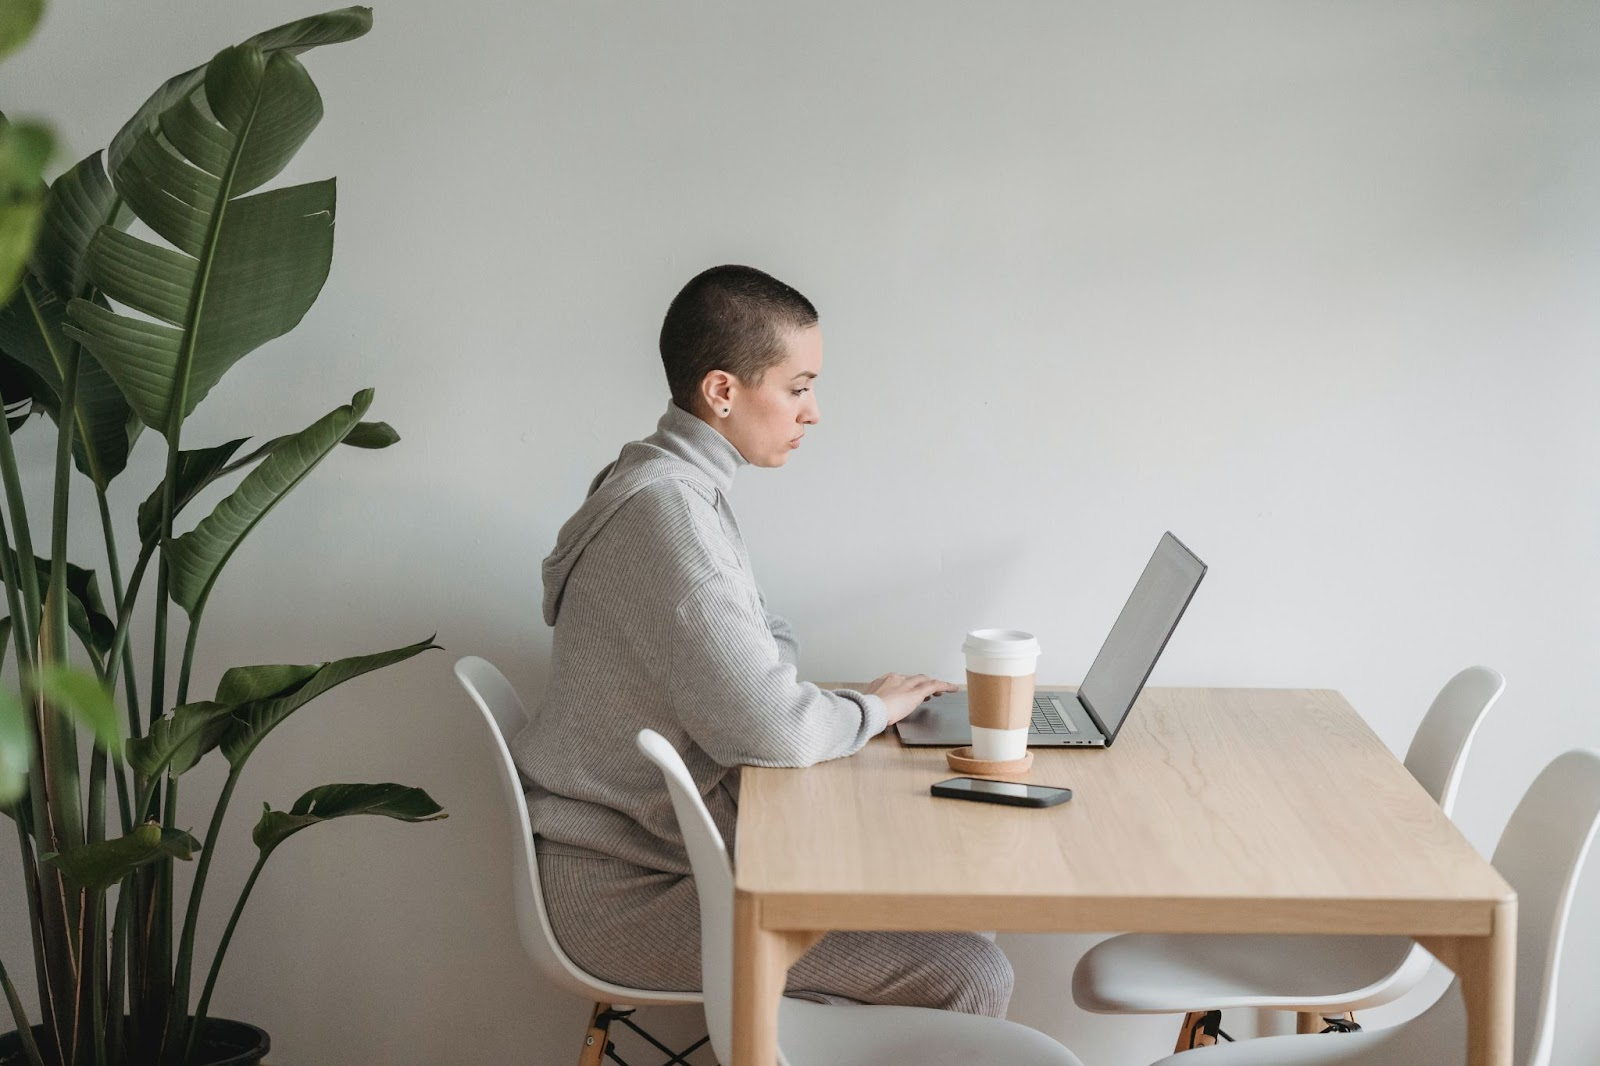 A light-skinned woman with shaved head sitting at a desk and working on her laptop. She's surrounded by leafy green house plants, and looks deeply focused.